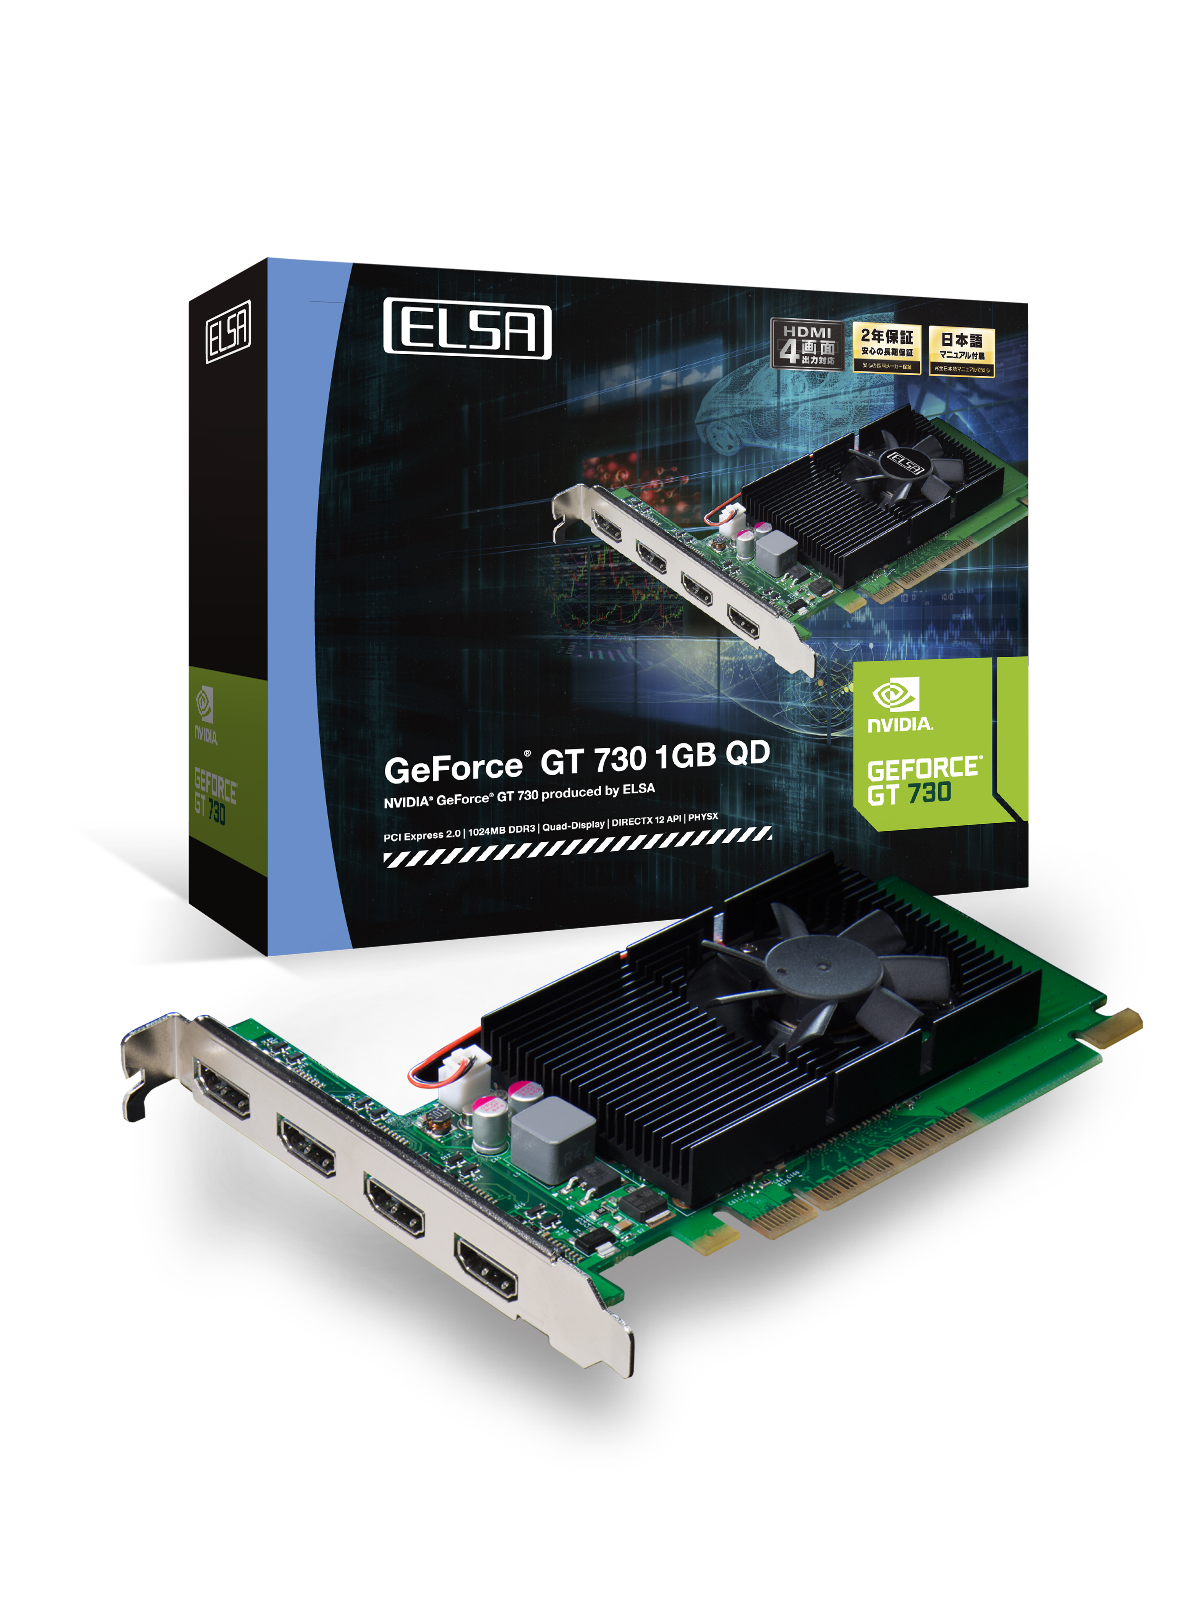 elsa_geforce_gt_730_1gb_qd_box_card